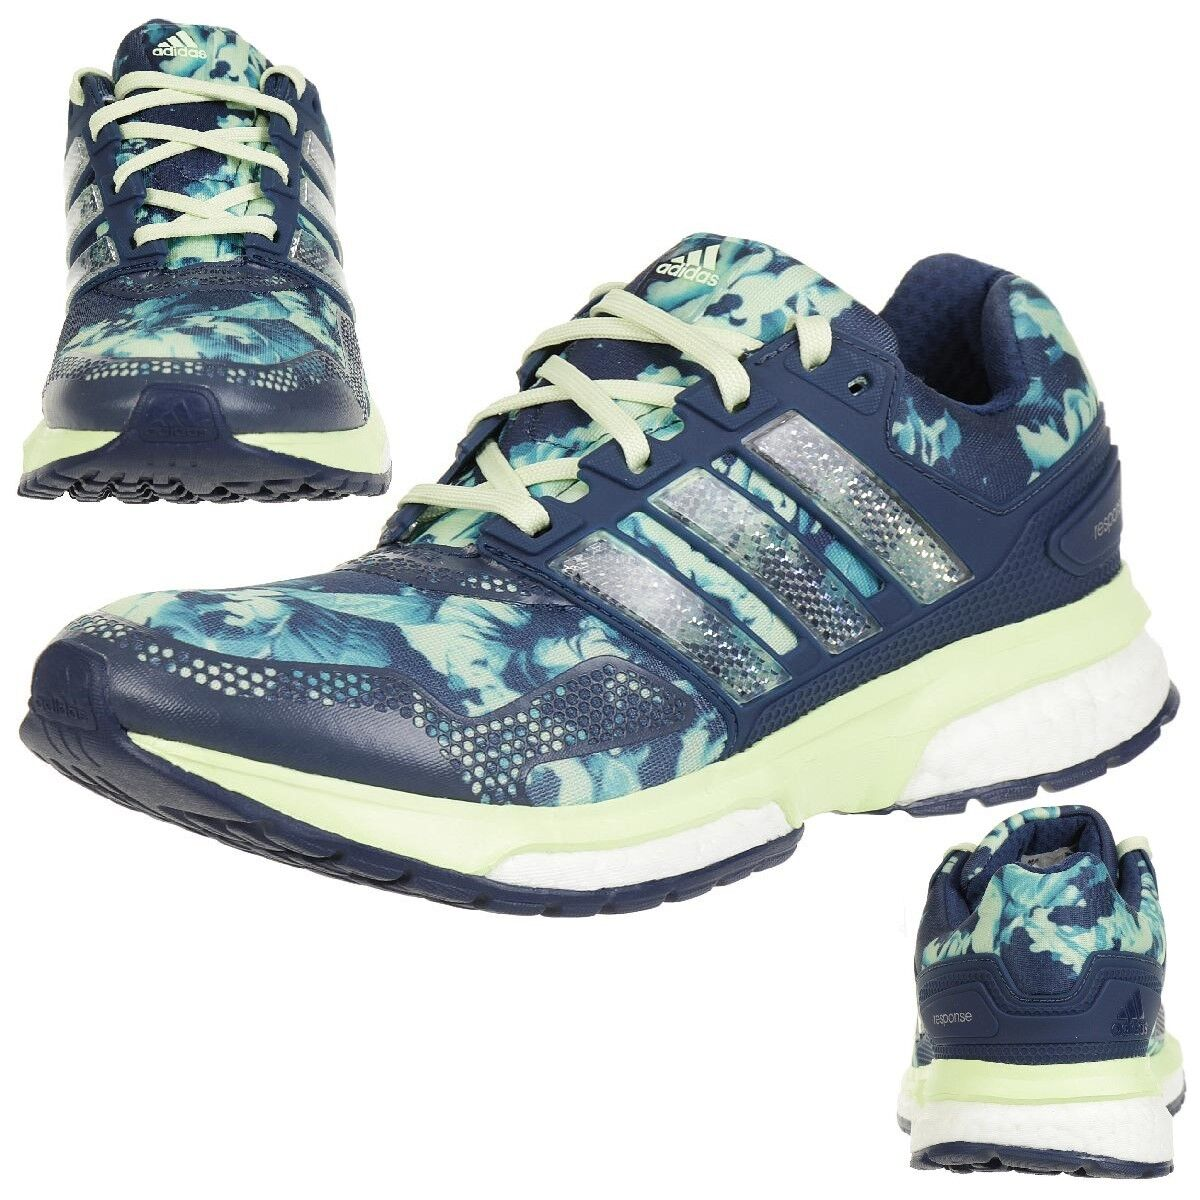 Adidas Response Boost 2 Graphic W Women Ladies Gym Training Running shoes